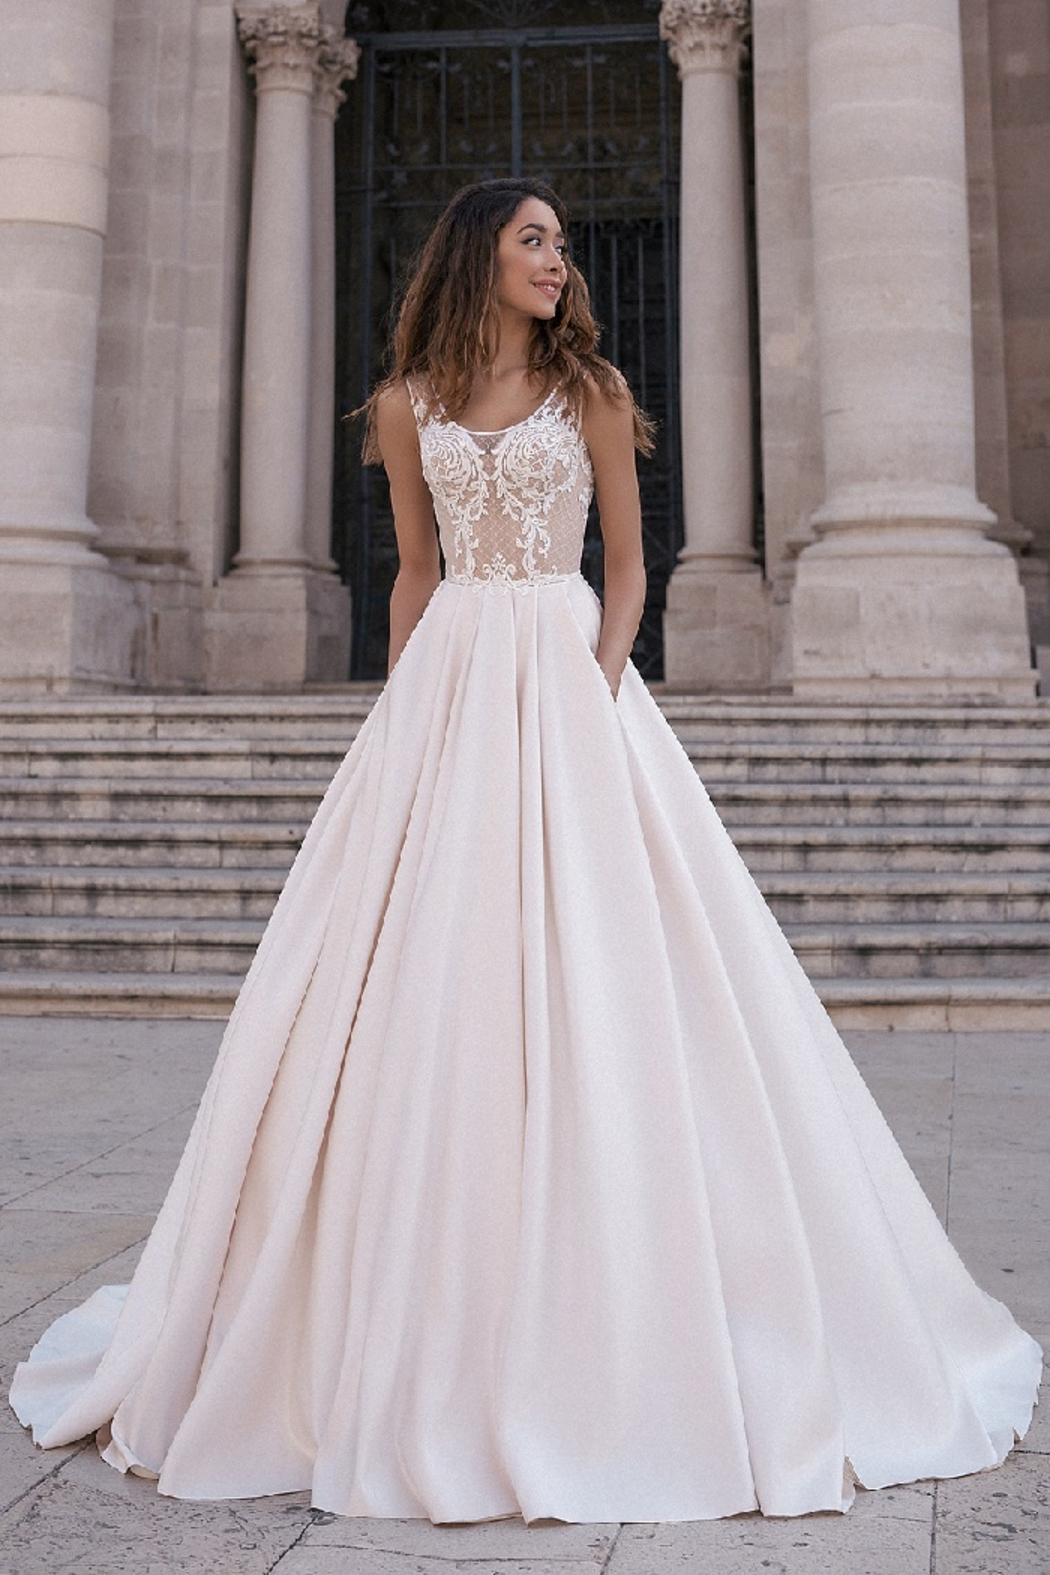 Rima Lav Cream Peach Satin & Lace Bridal Ballgown - Main Image